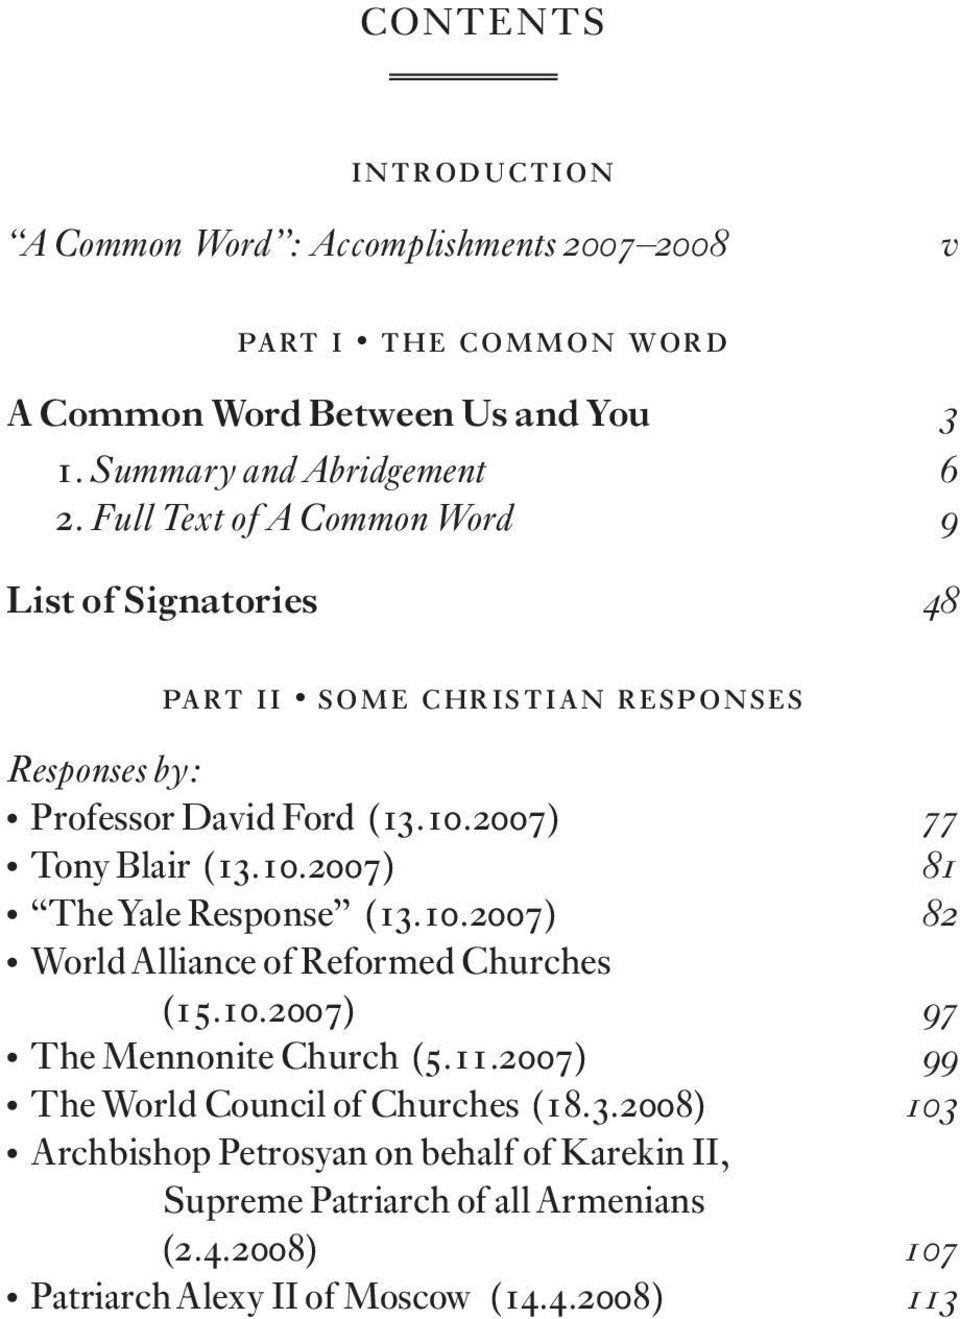 2007) 77 Tony Blair (13.10.2007) 81 TheYale Response (13.10.2007) 82 WorldAlliance of Reformed Churches (15.10.2007) 97 The Mennonite Church (5.11.